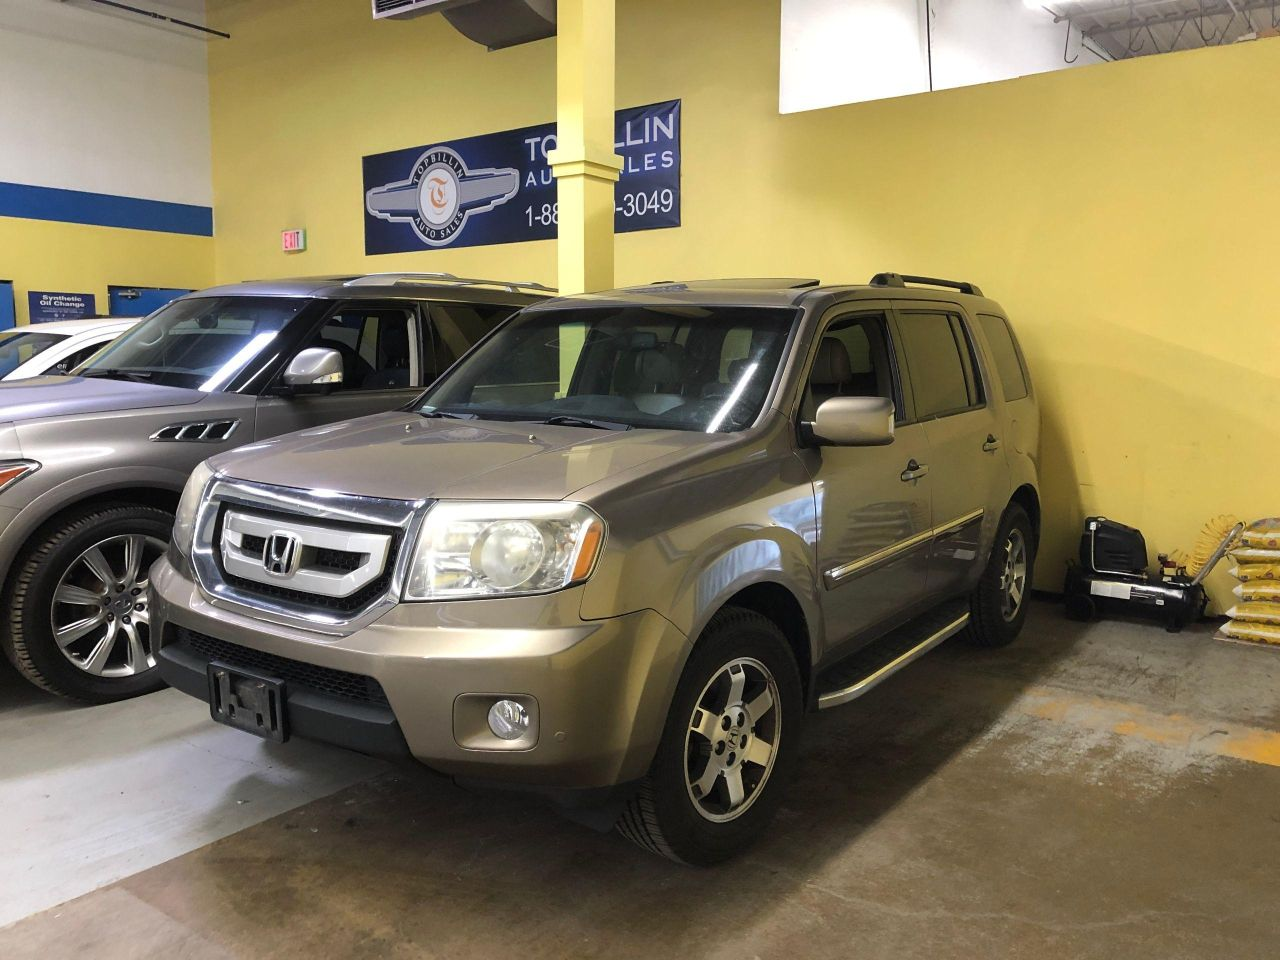 2009 Honda Pilot Touring, Fully Loaded, Navi, Leather, Roof